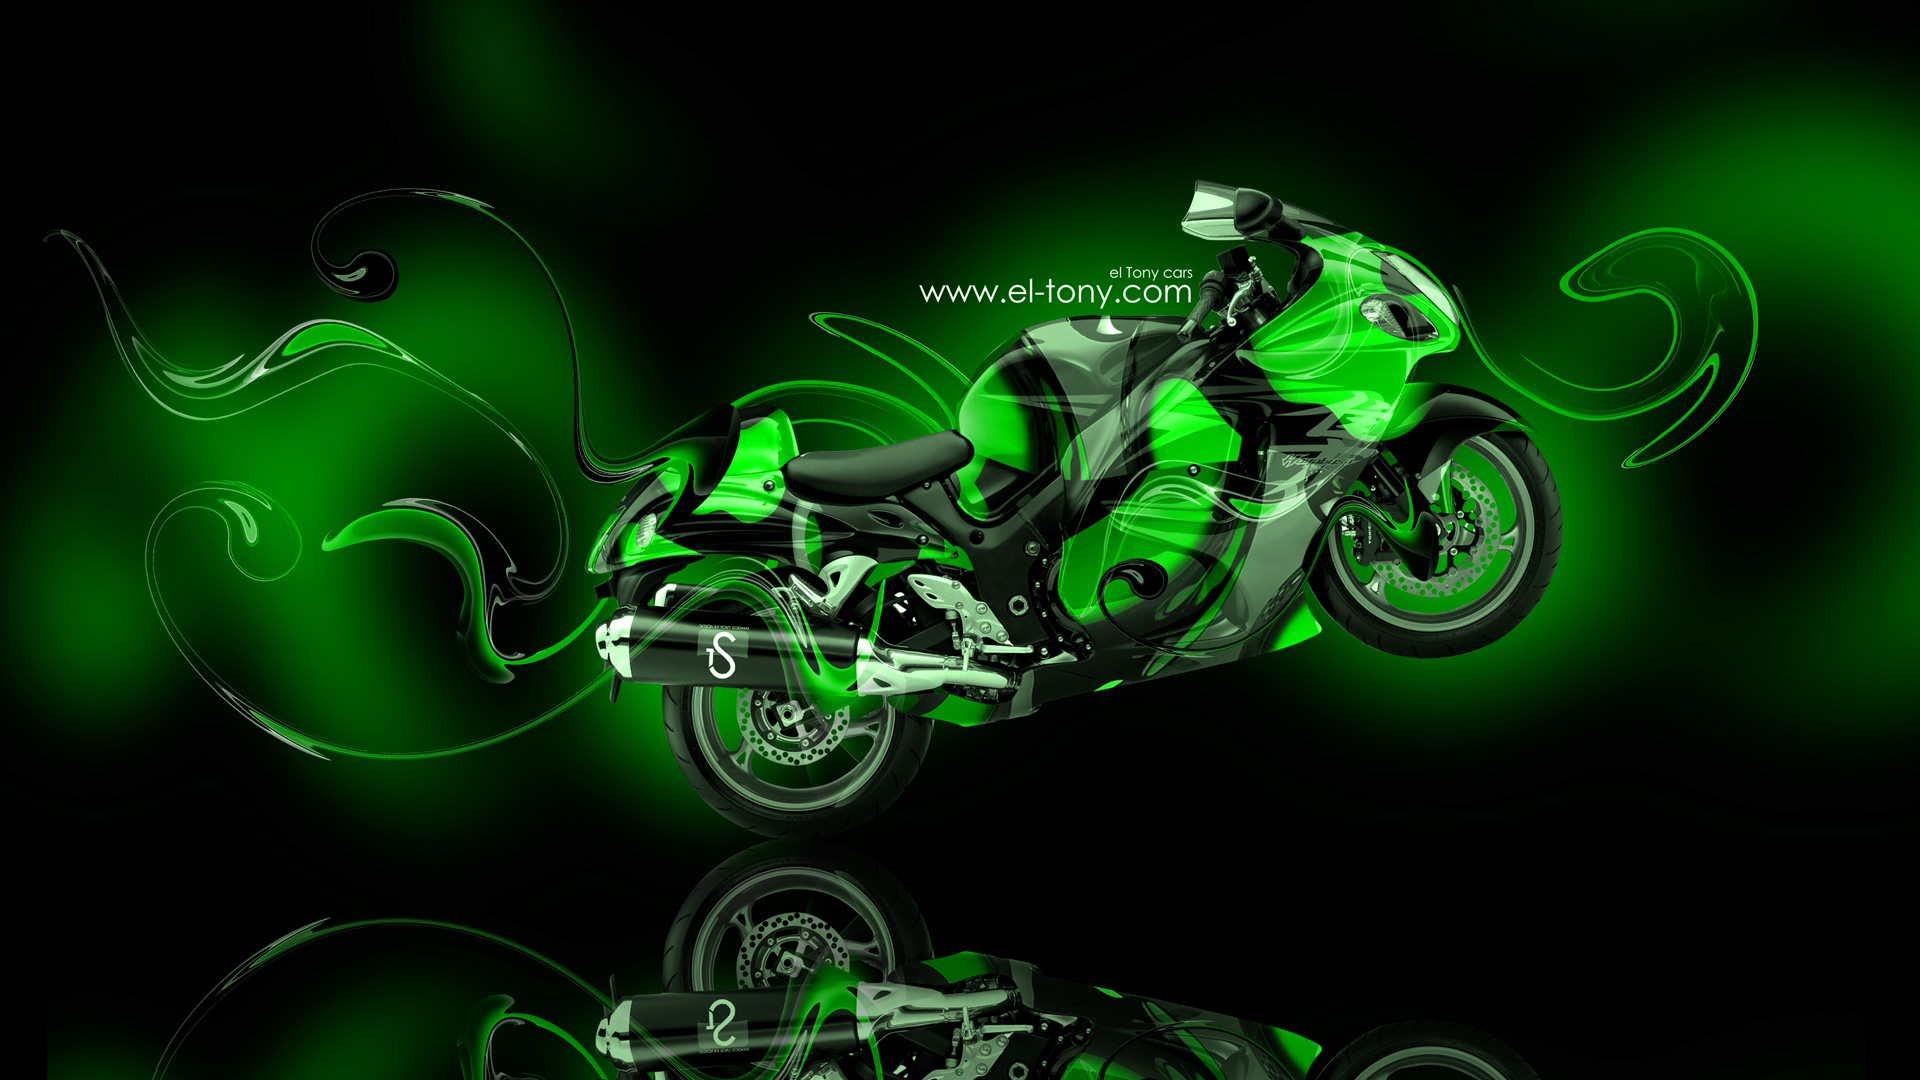 Captivating Suzuki Hayabusa Super Abstract Plastic Bike